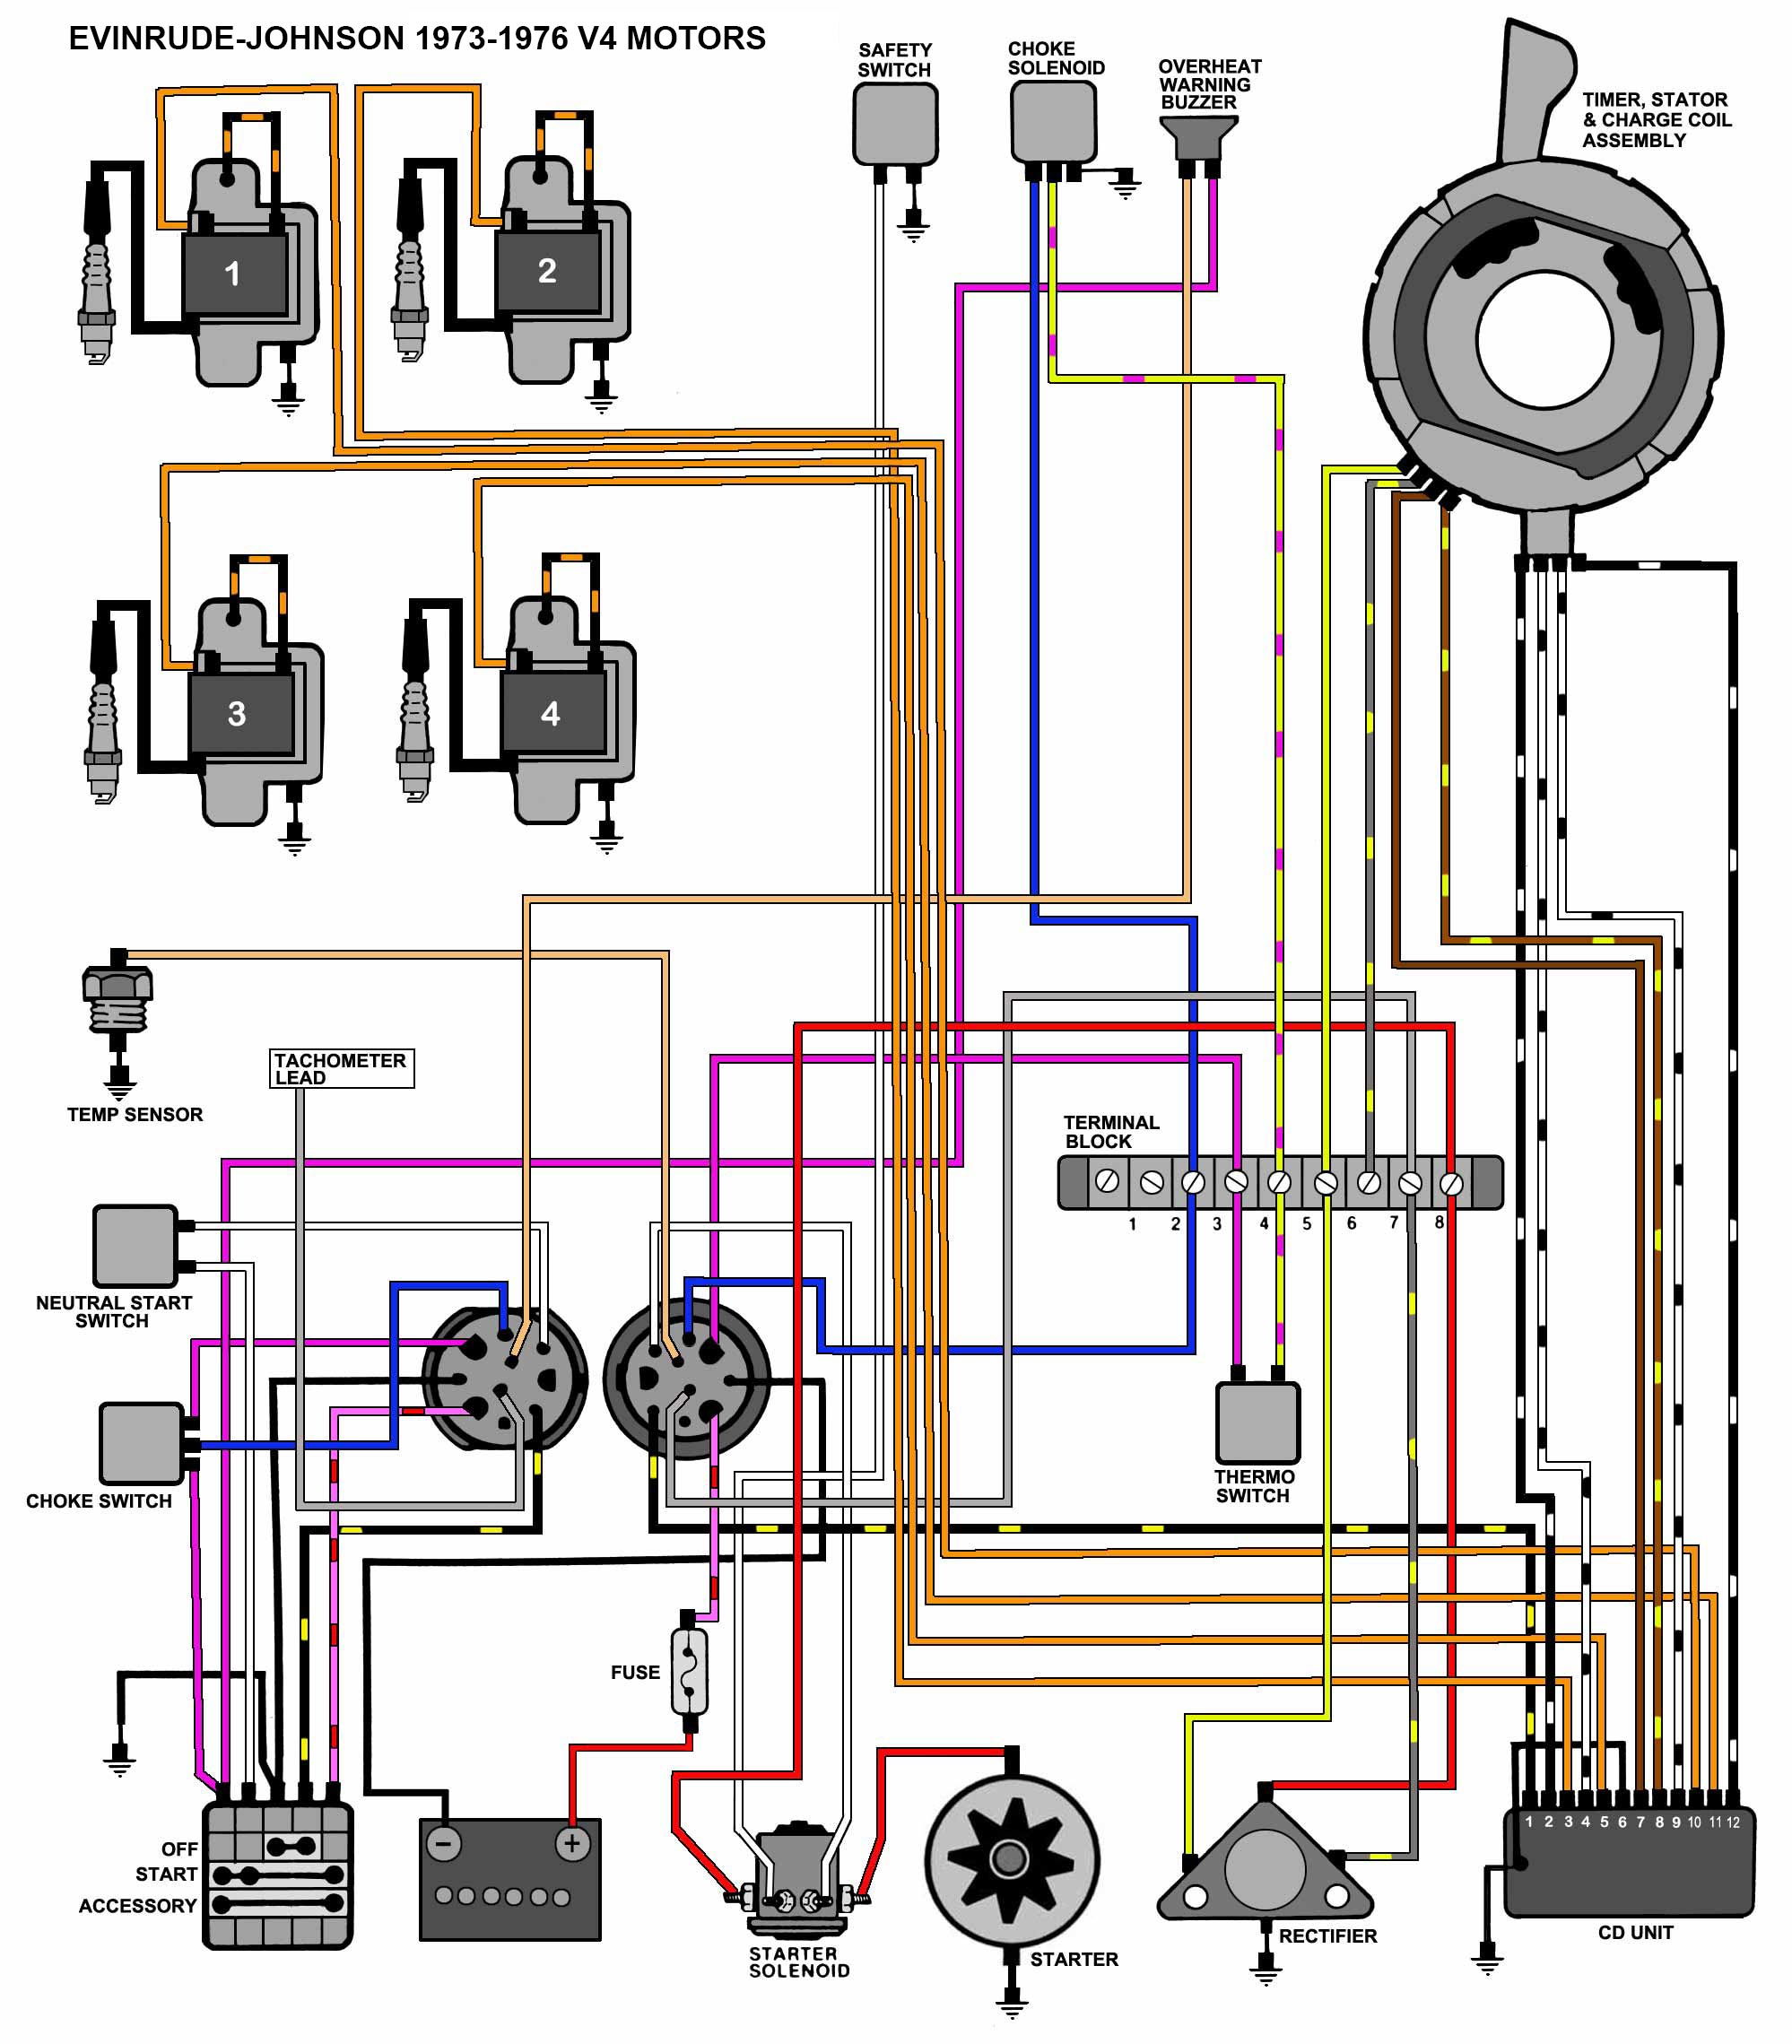 V4_1973 evinrude wiring diagram outboards wiring diagram and schematic 1971 50 hp evinrude lark wiring diagram at bayanpartner.co